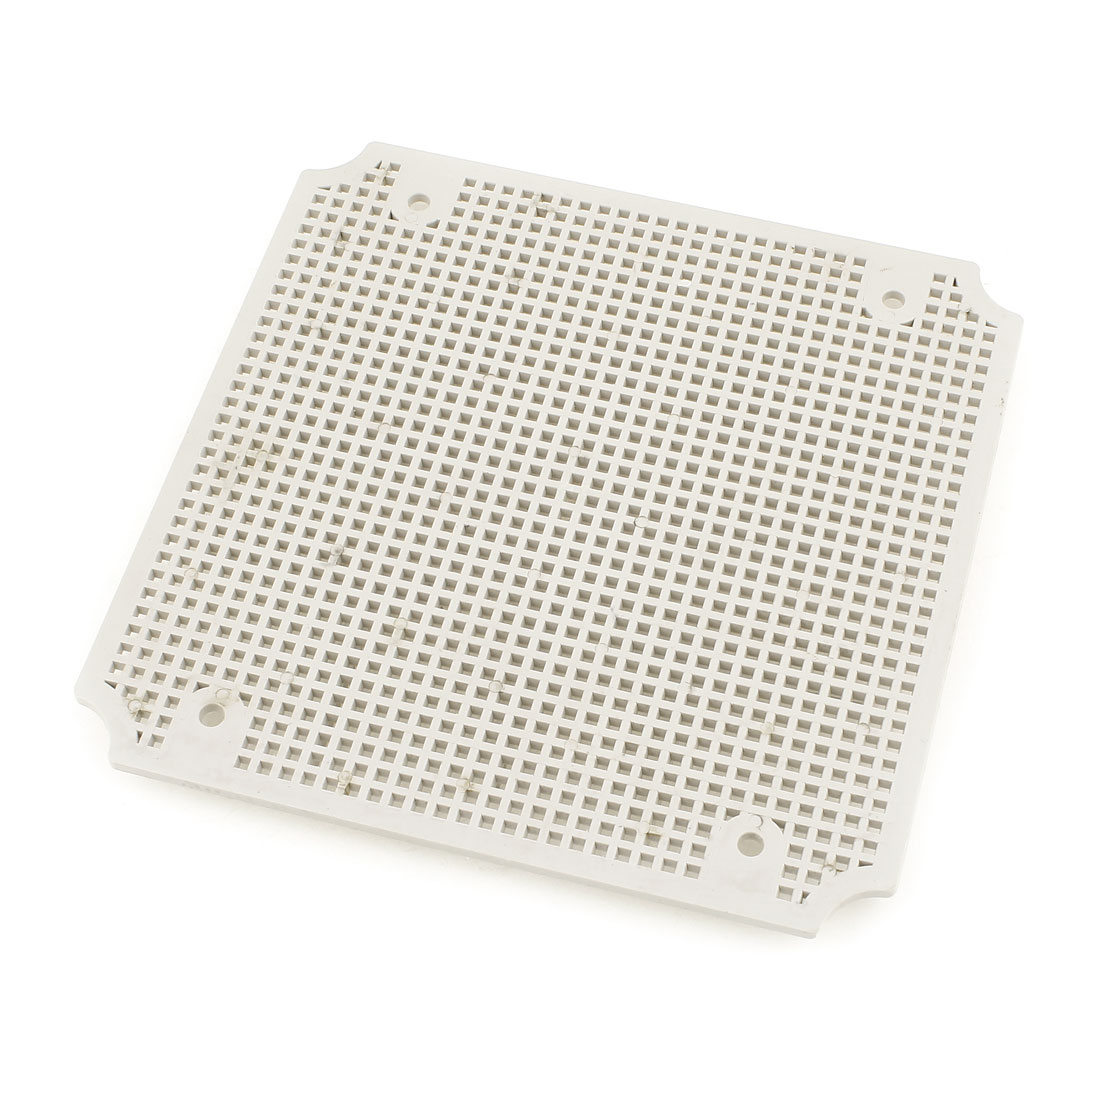 Gray Plastic Mesh Enclosure Mounting Plate for 200 x 200mm Junction Box